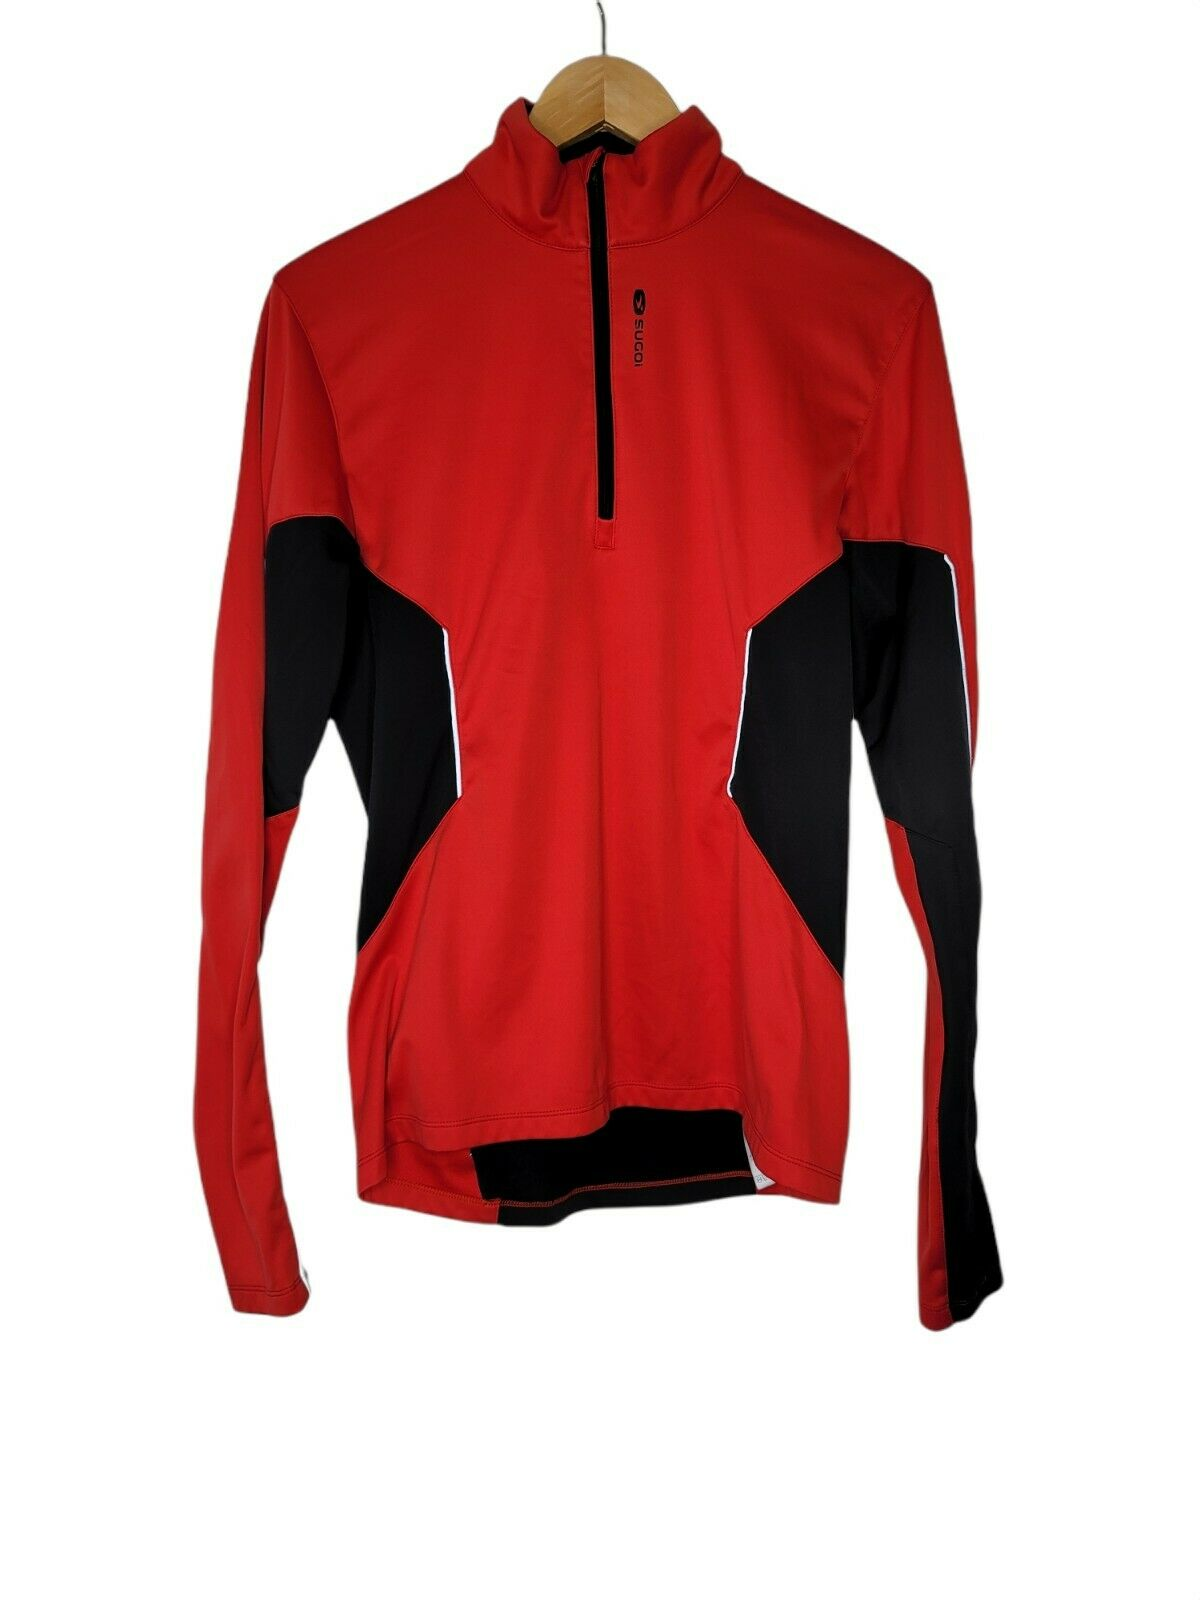 SUGOI women's athletic running Cycling 1/4 Zip Pullover Arm Pocket Lined Top Md